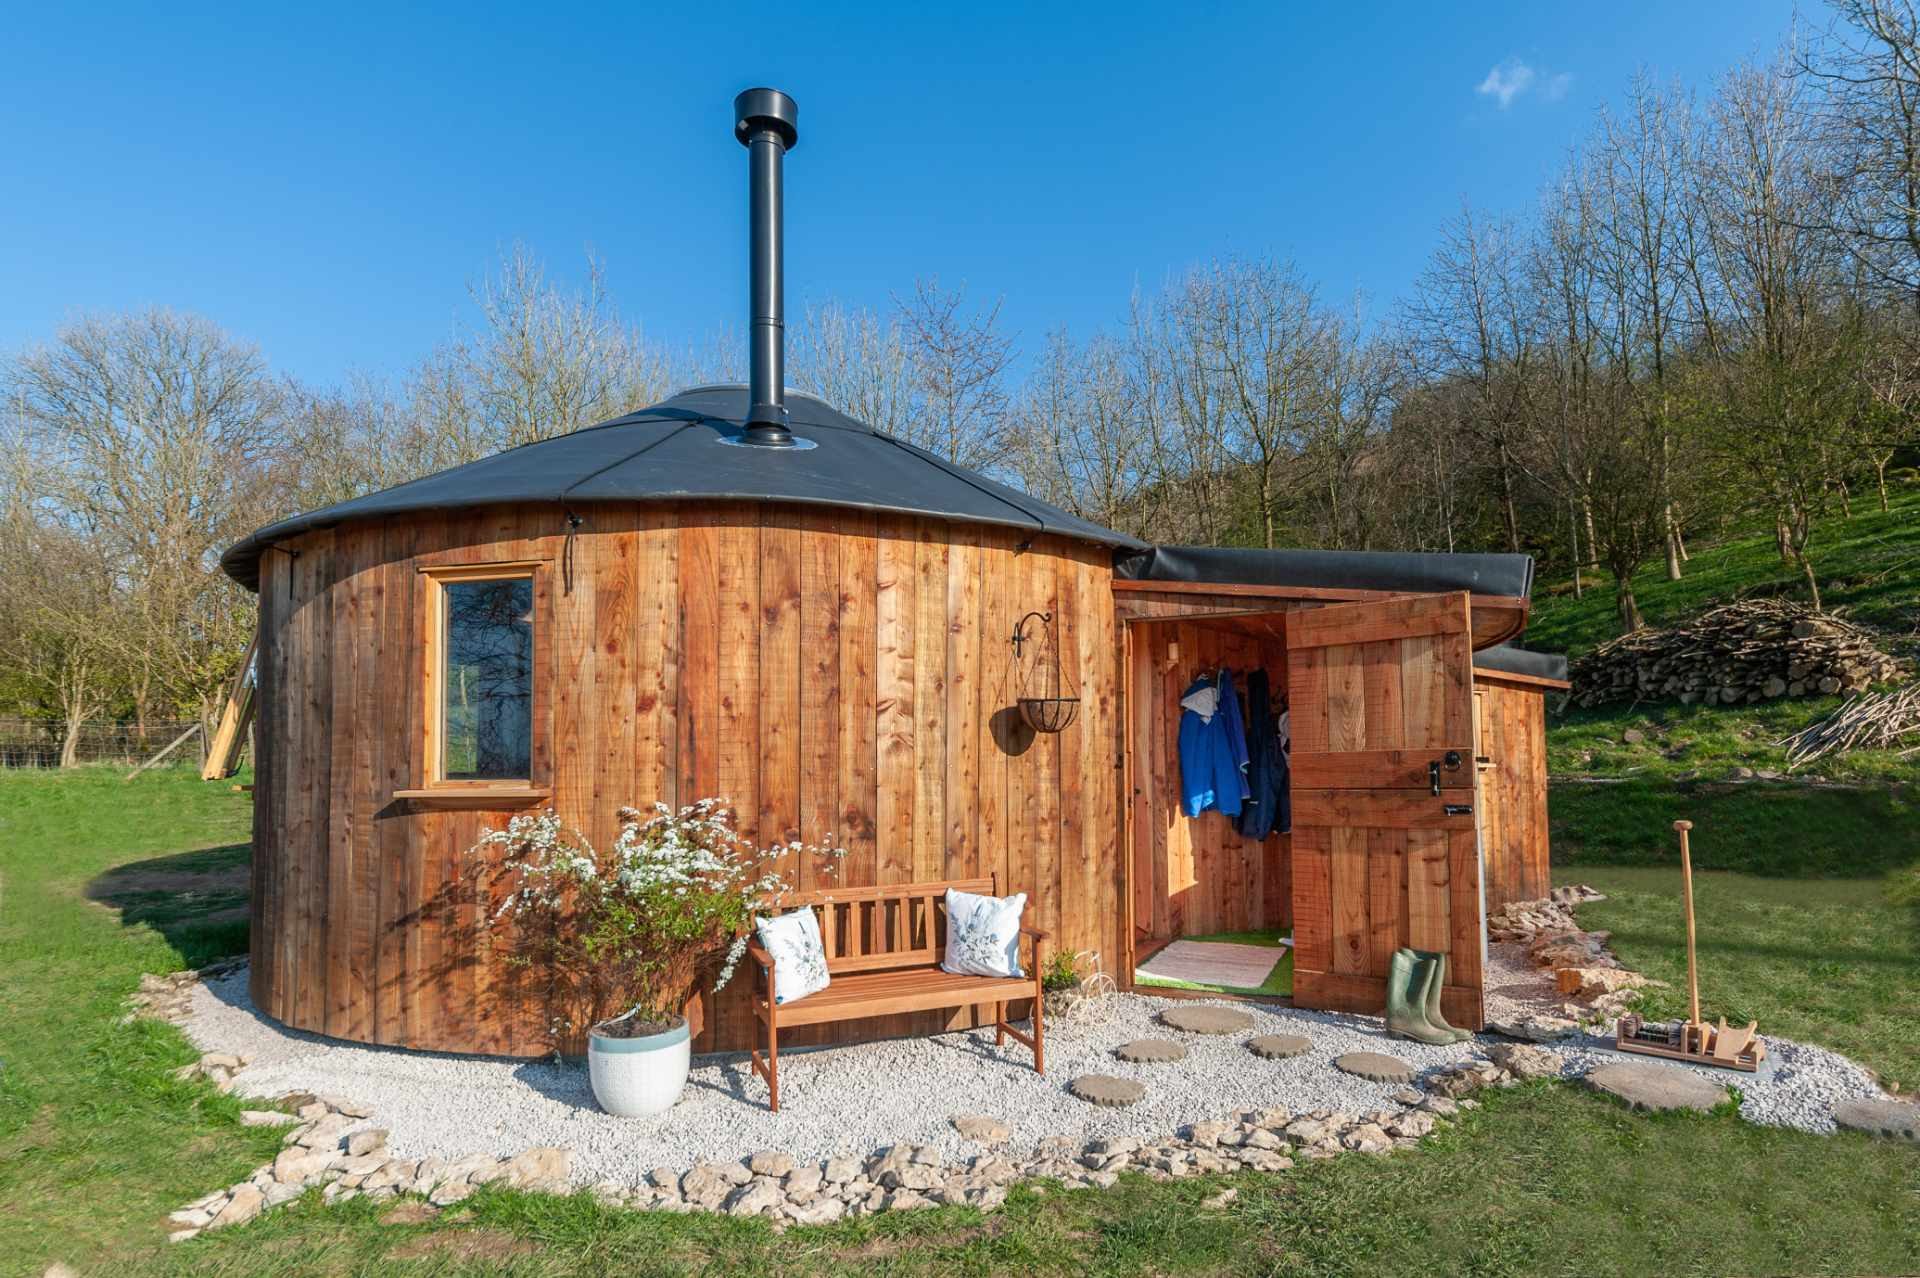 kelker-well-roundhouse-with-a-bench-in-field-with-trees-in-background--carnforth-glamping-with-hot-tub-lake-district